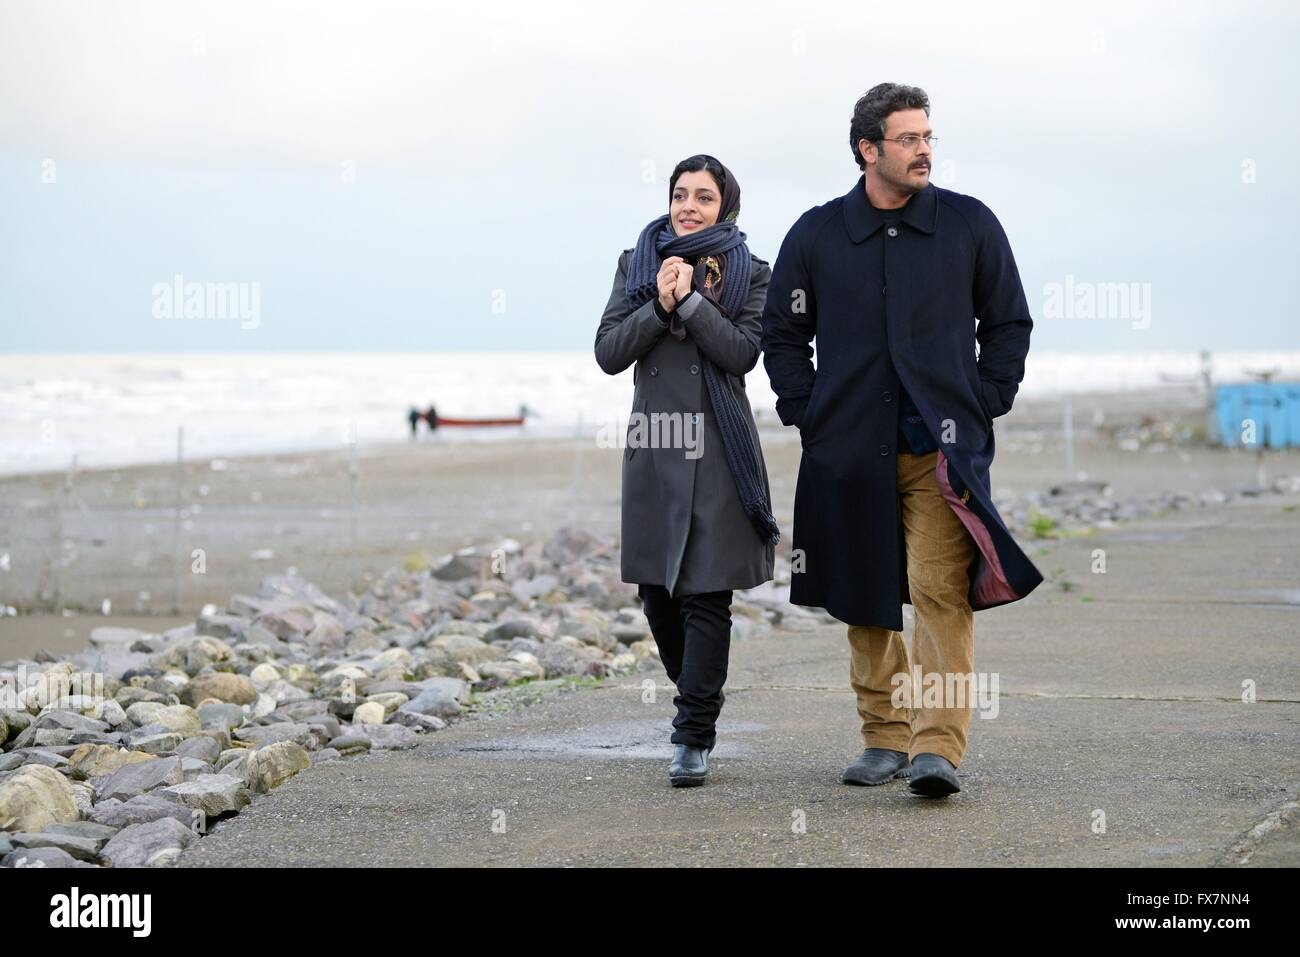 bayat stock photos bayat stock images alamy nahid year 2015 director ida panahandeh sareh bayat pejman bazeghi stock